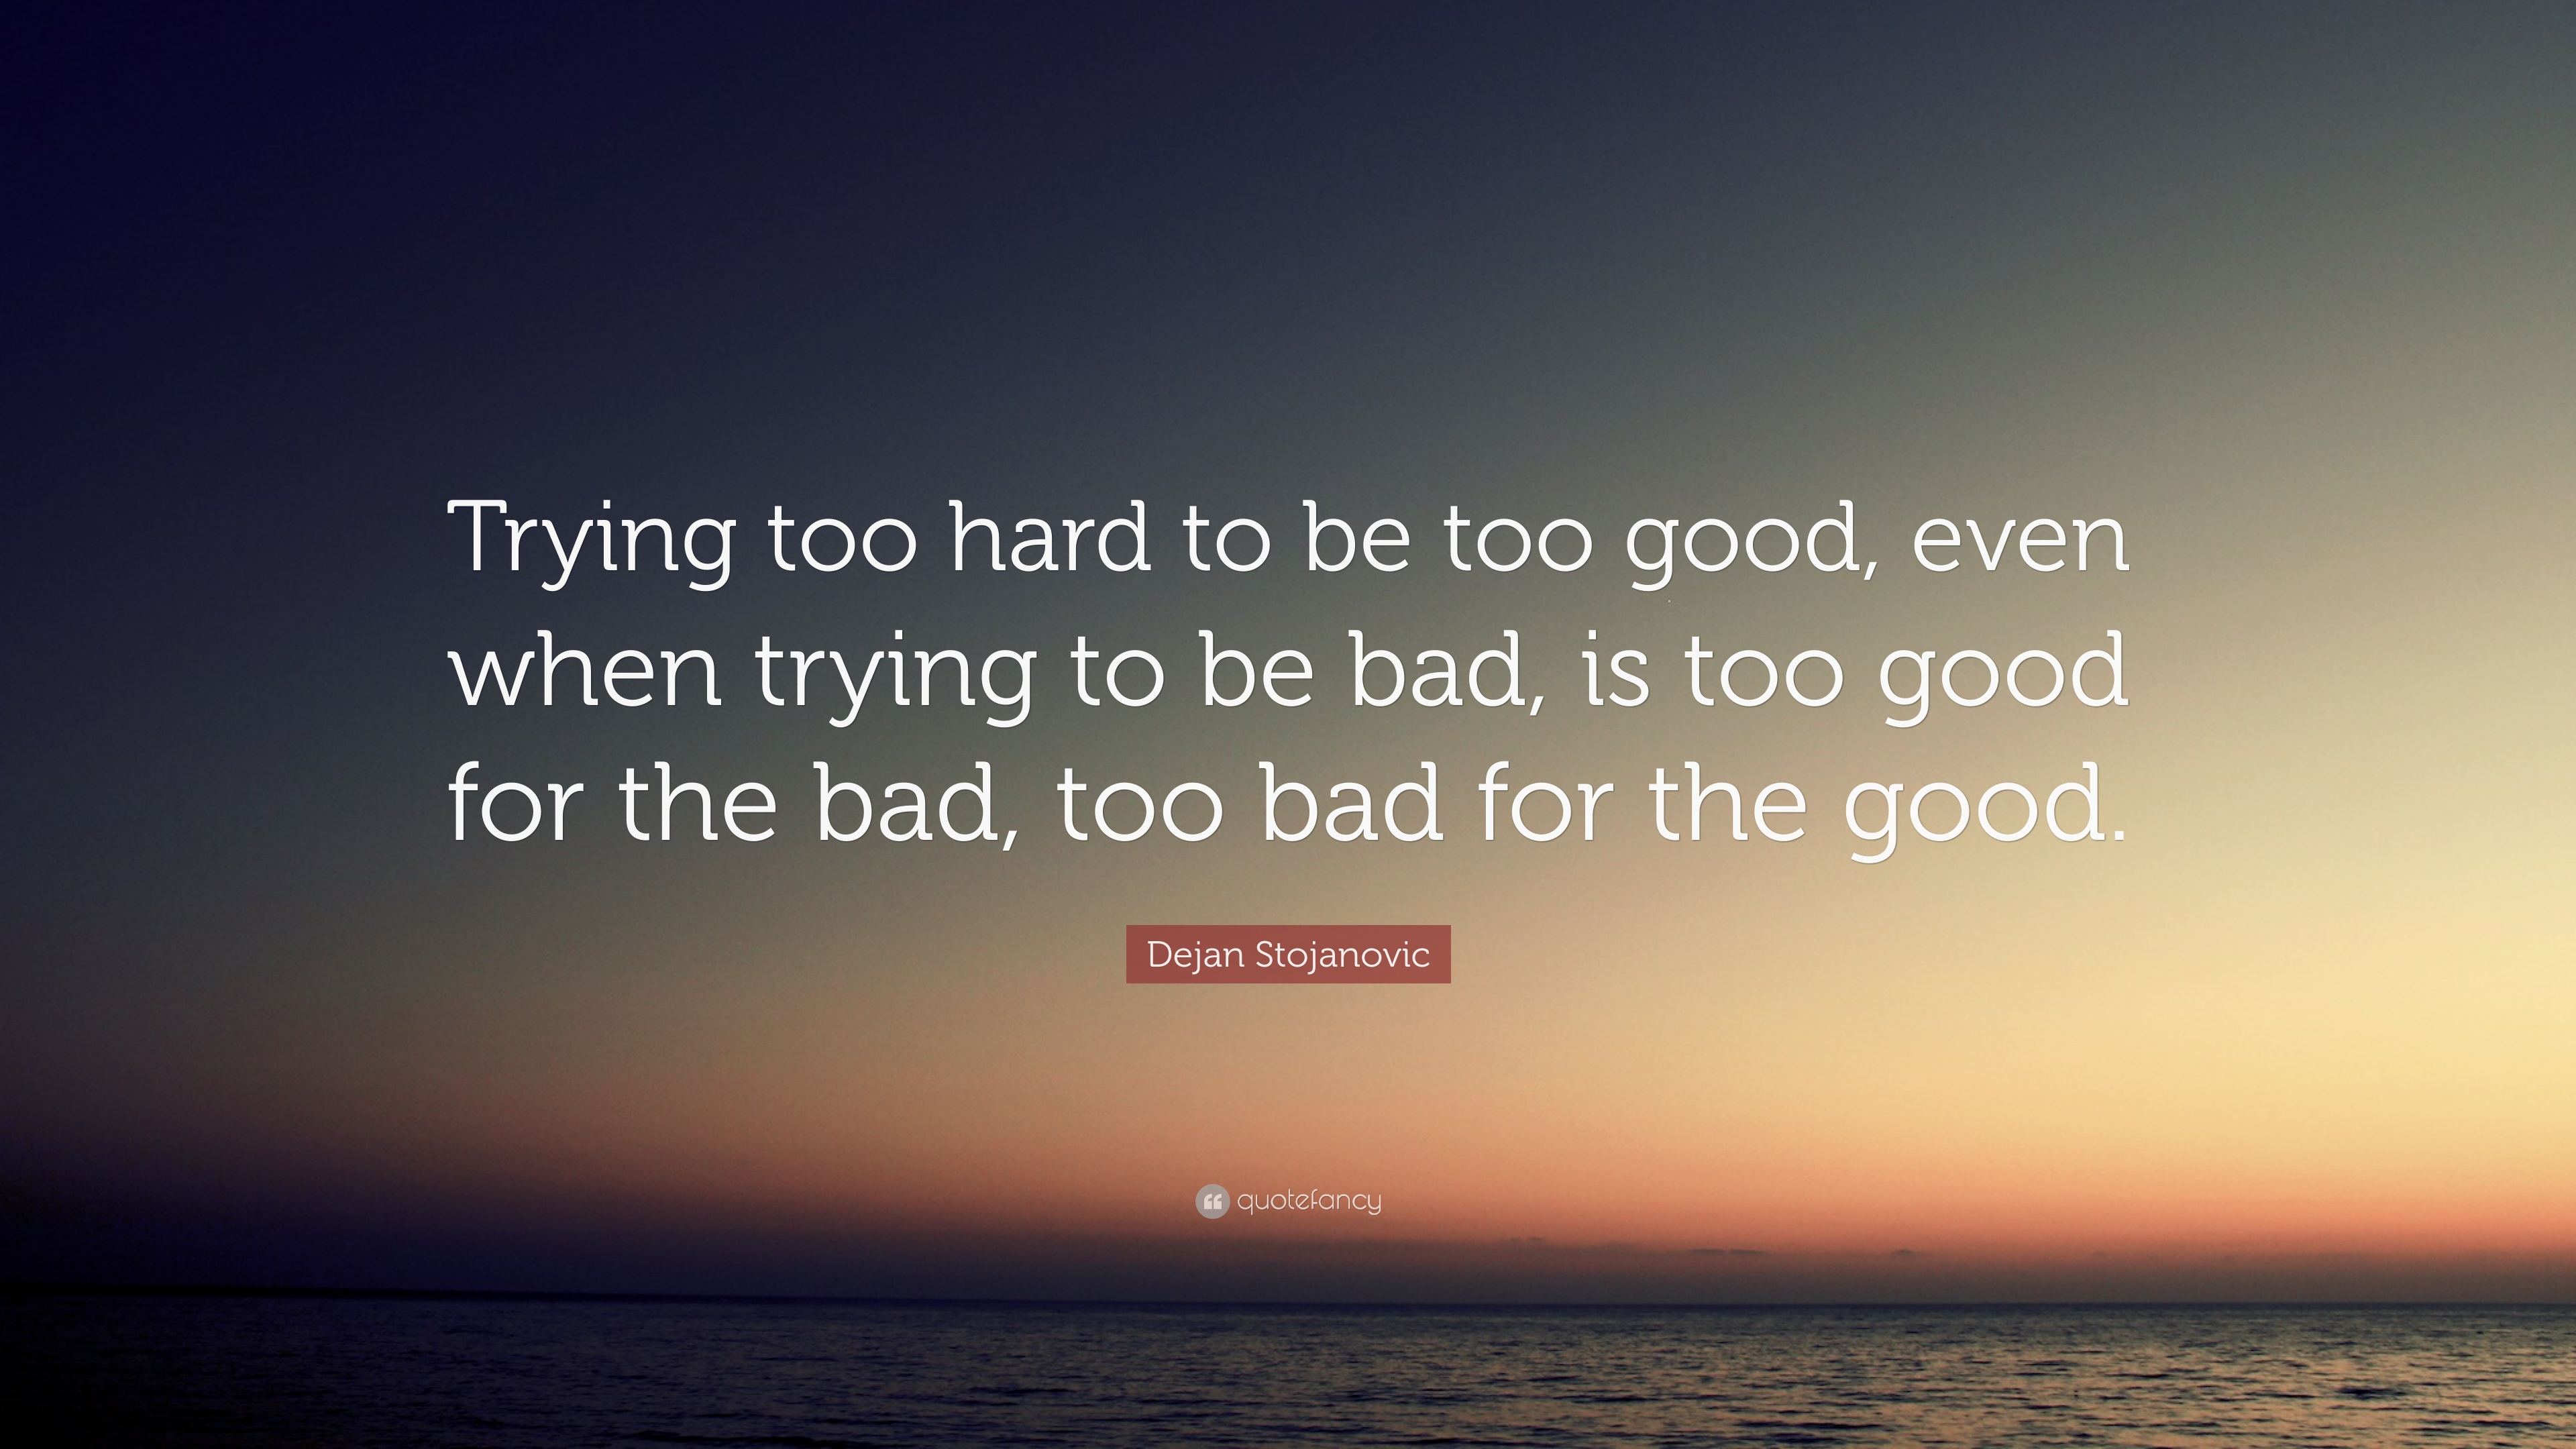 Why be too good